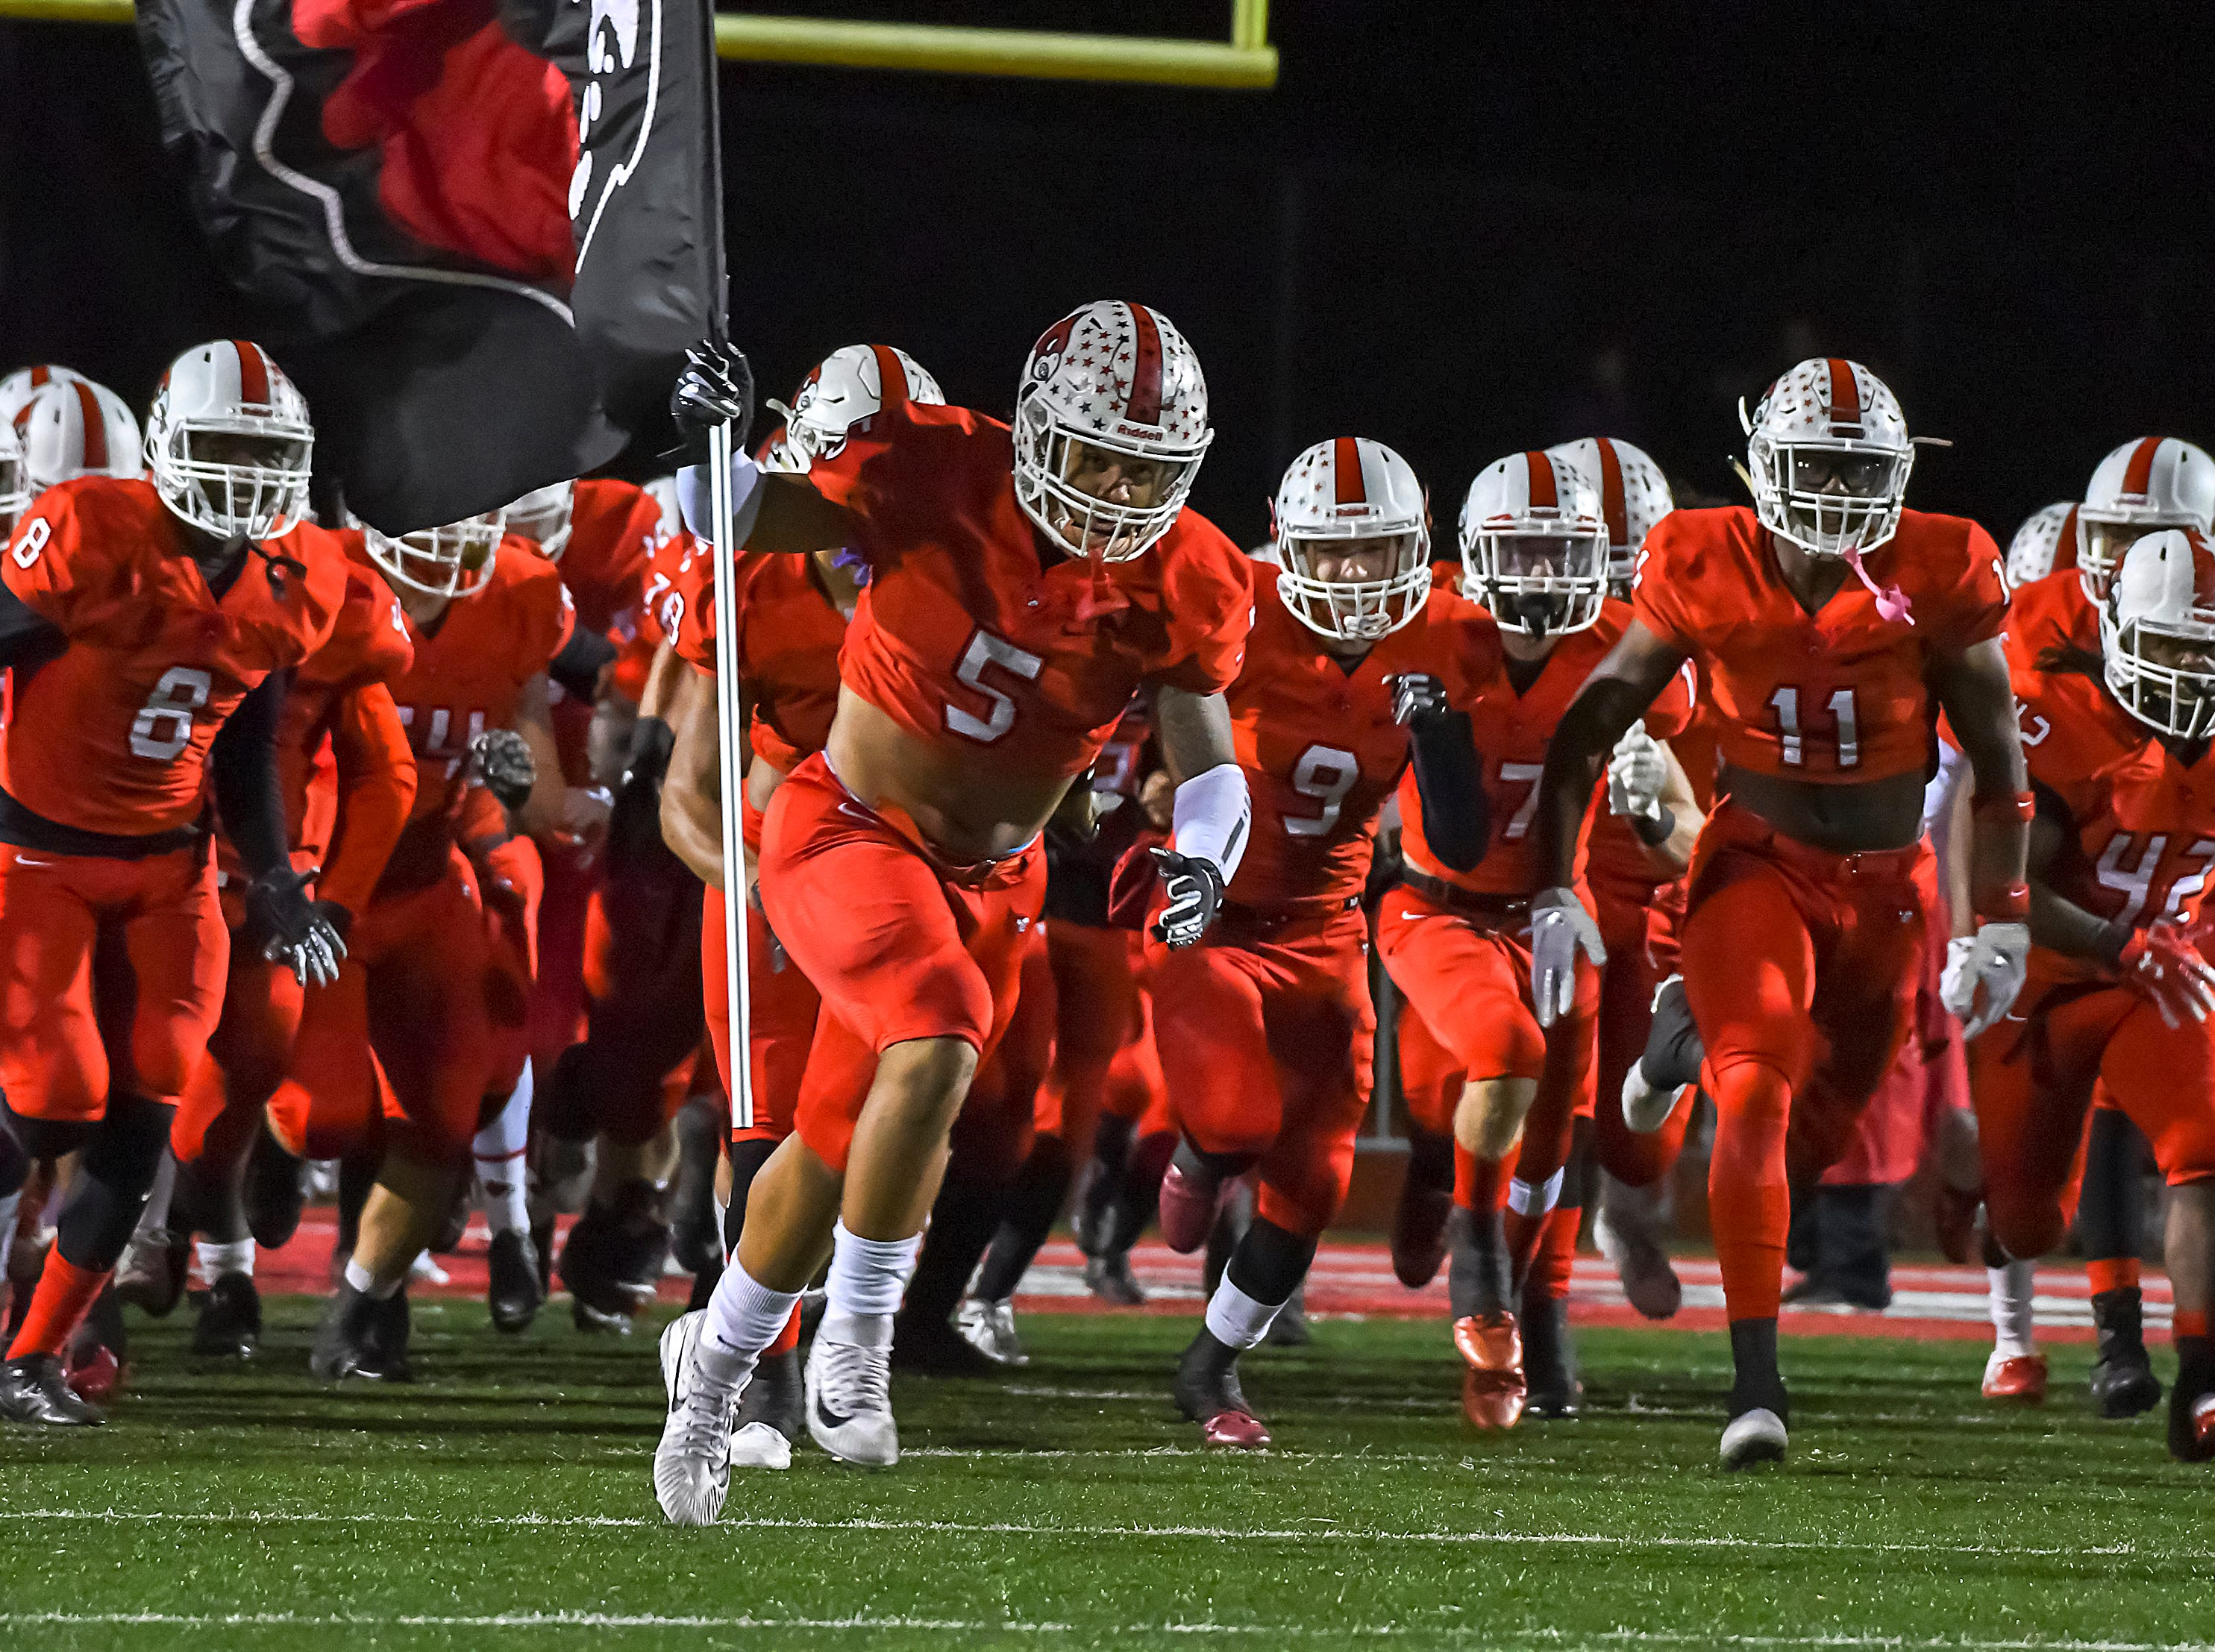 The Colerain Cardinals run onto the field before their game against the St. X Bombers in the OHSAA DI Region 4 Playoffs at Colerain High School,  Friday Nov. 2, 2018